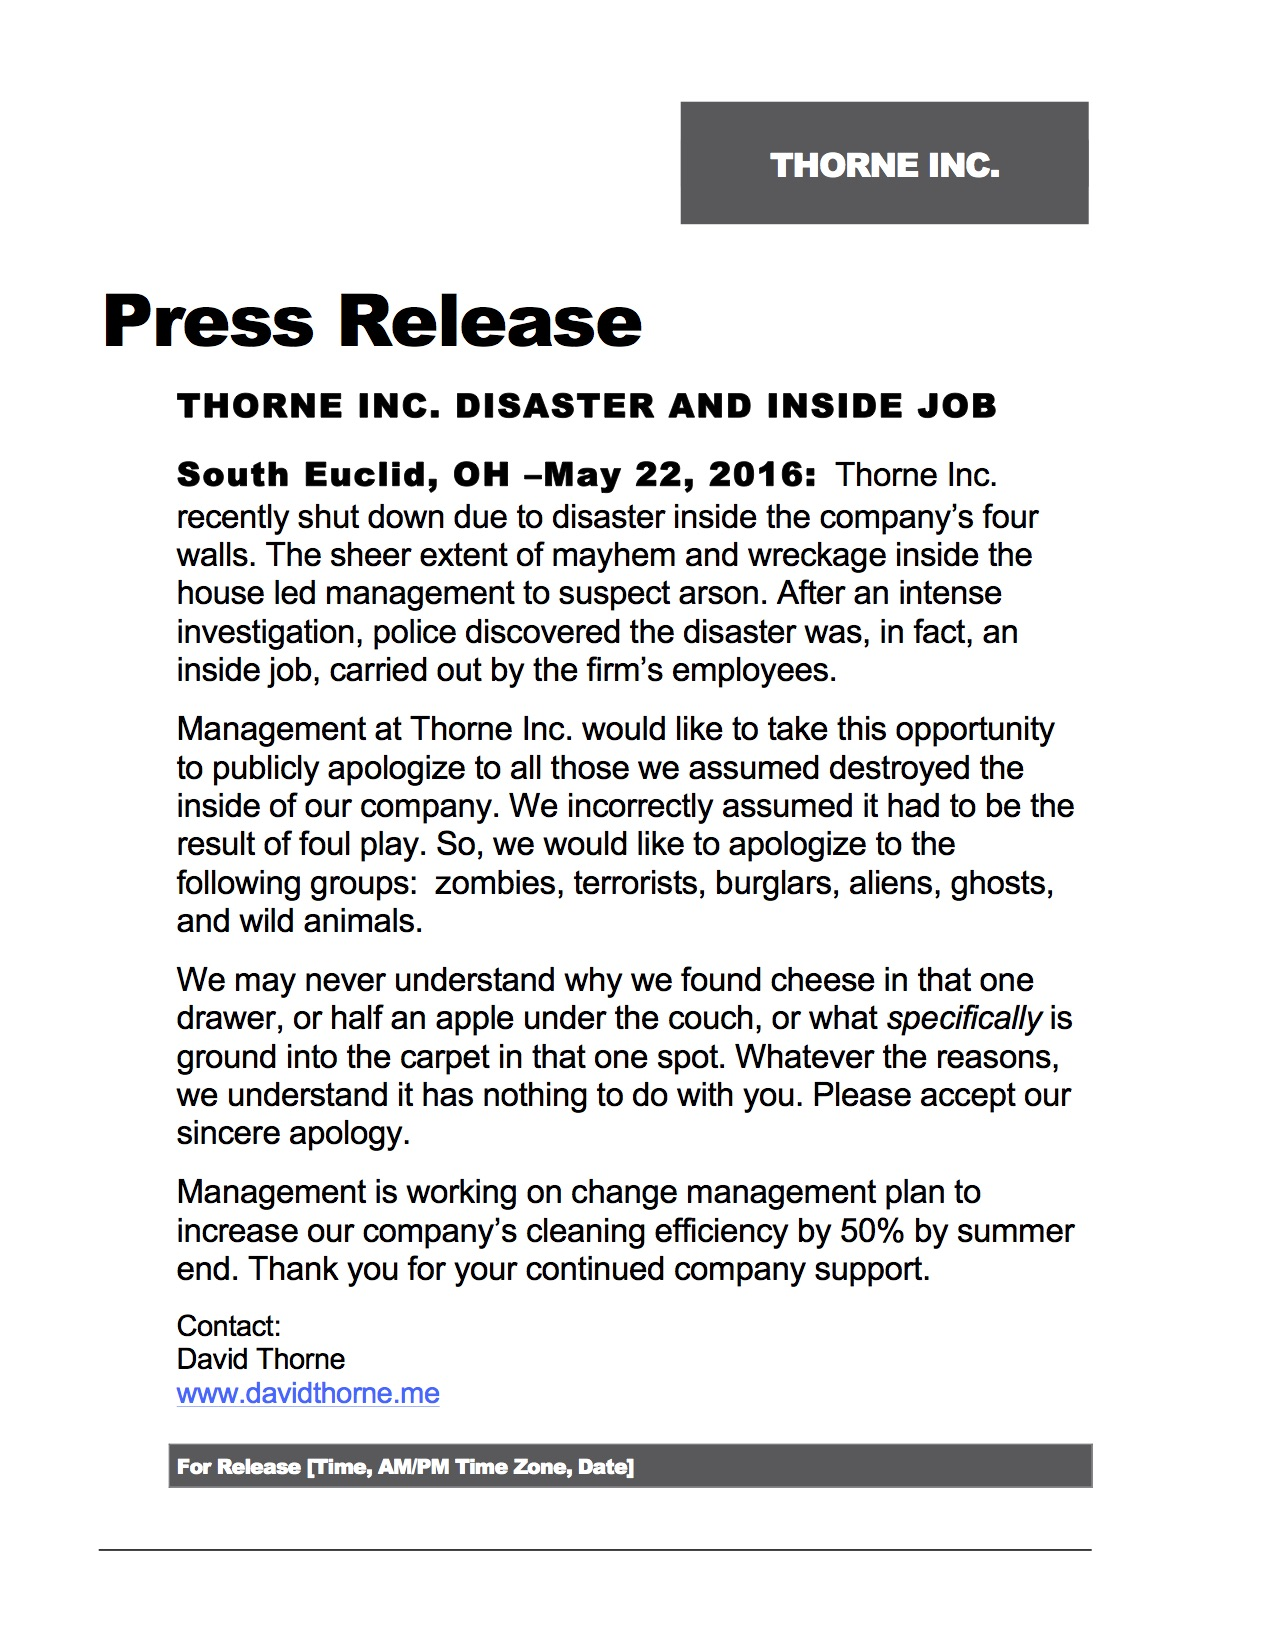 Disaster and inside job press releaes copy